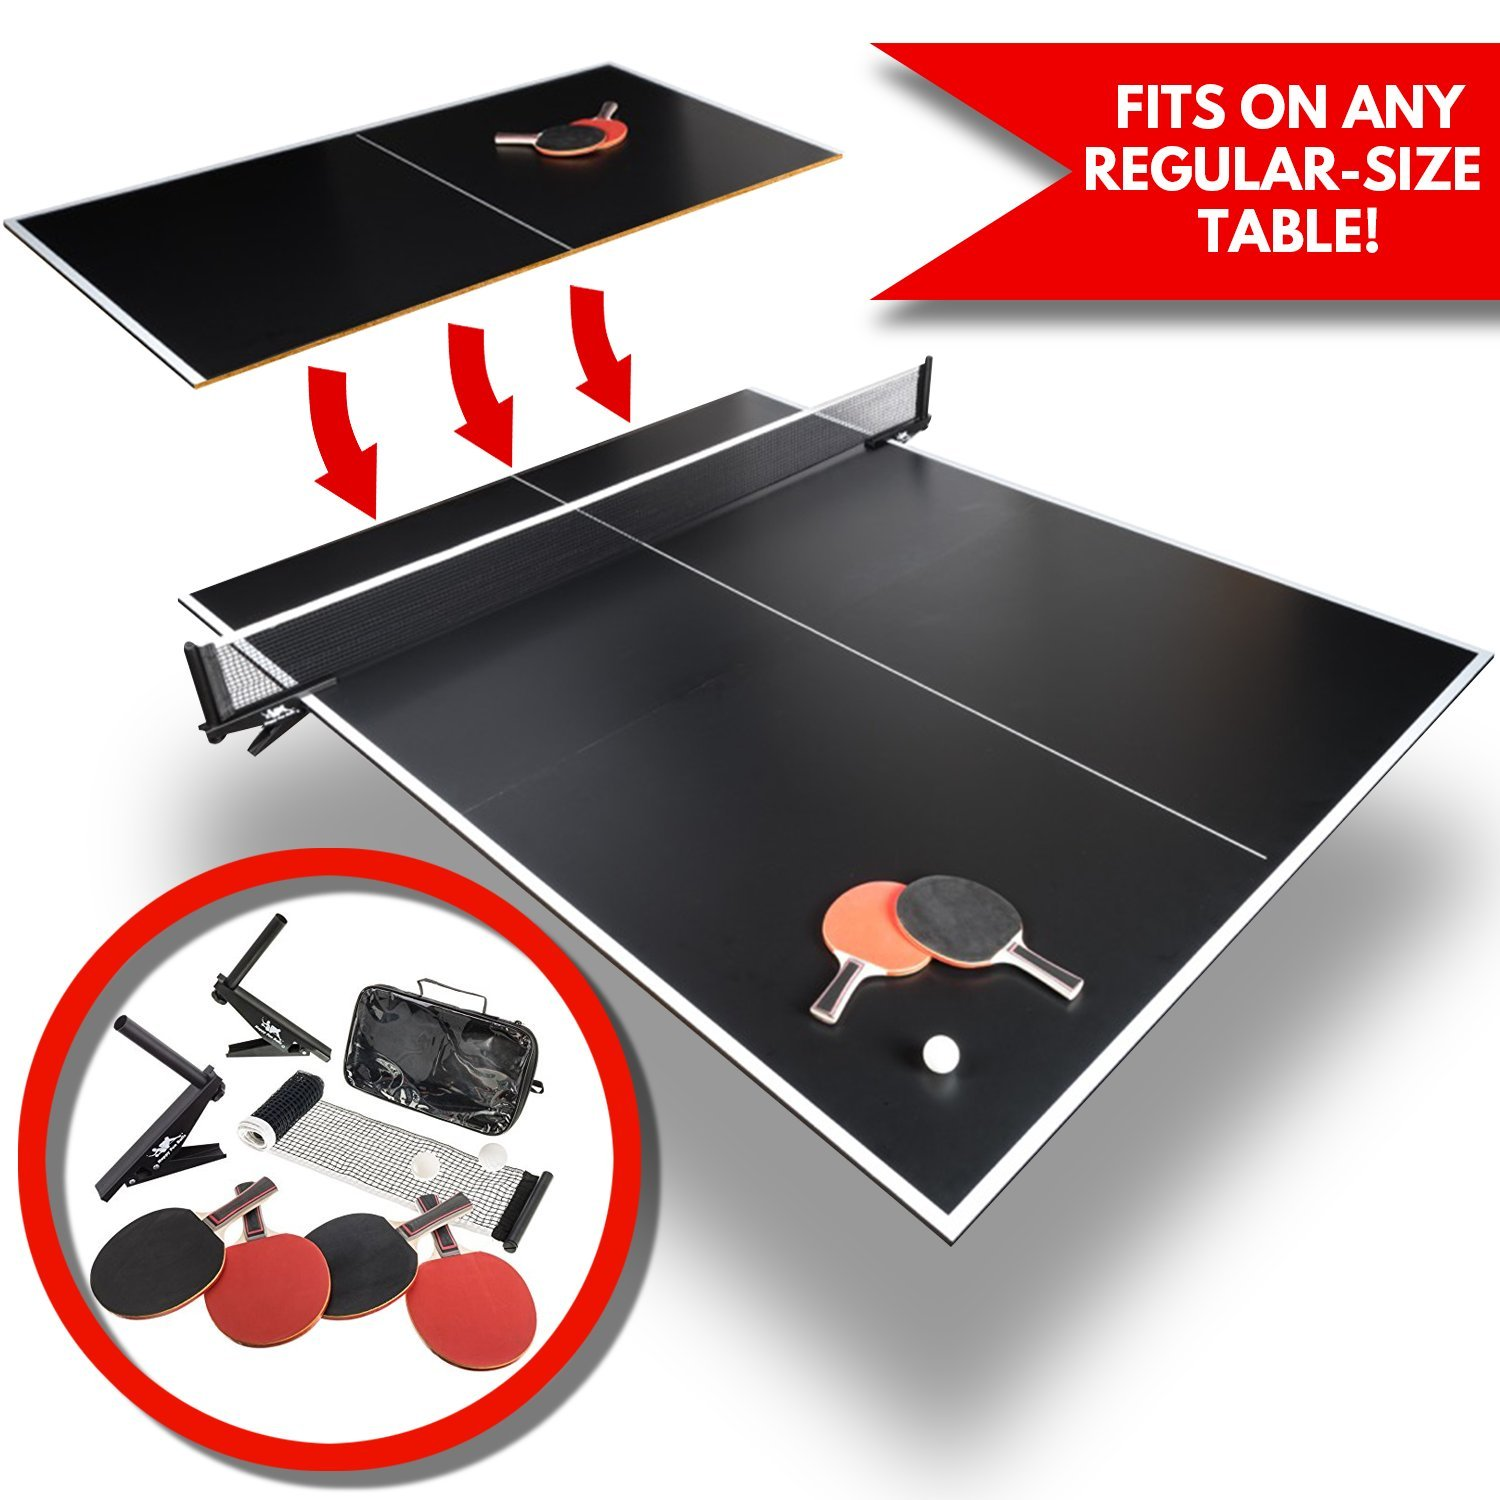 Convertible Table Tennis Top   Full Size   Tri Folding Portable Ping Pong Conversion Set   Includes Balls, 4x Racket and Net   Foldable Tops for Pool Tables